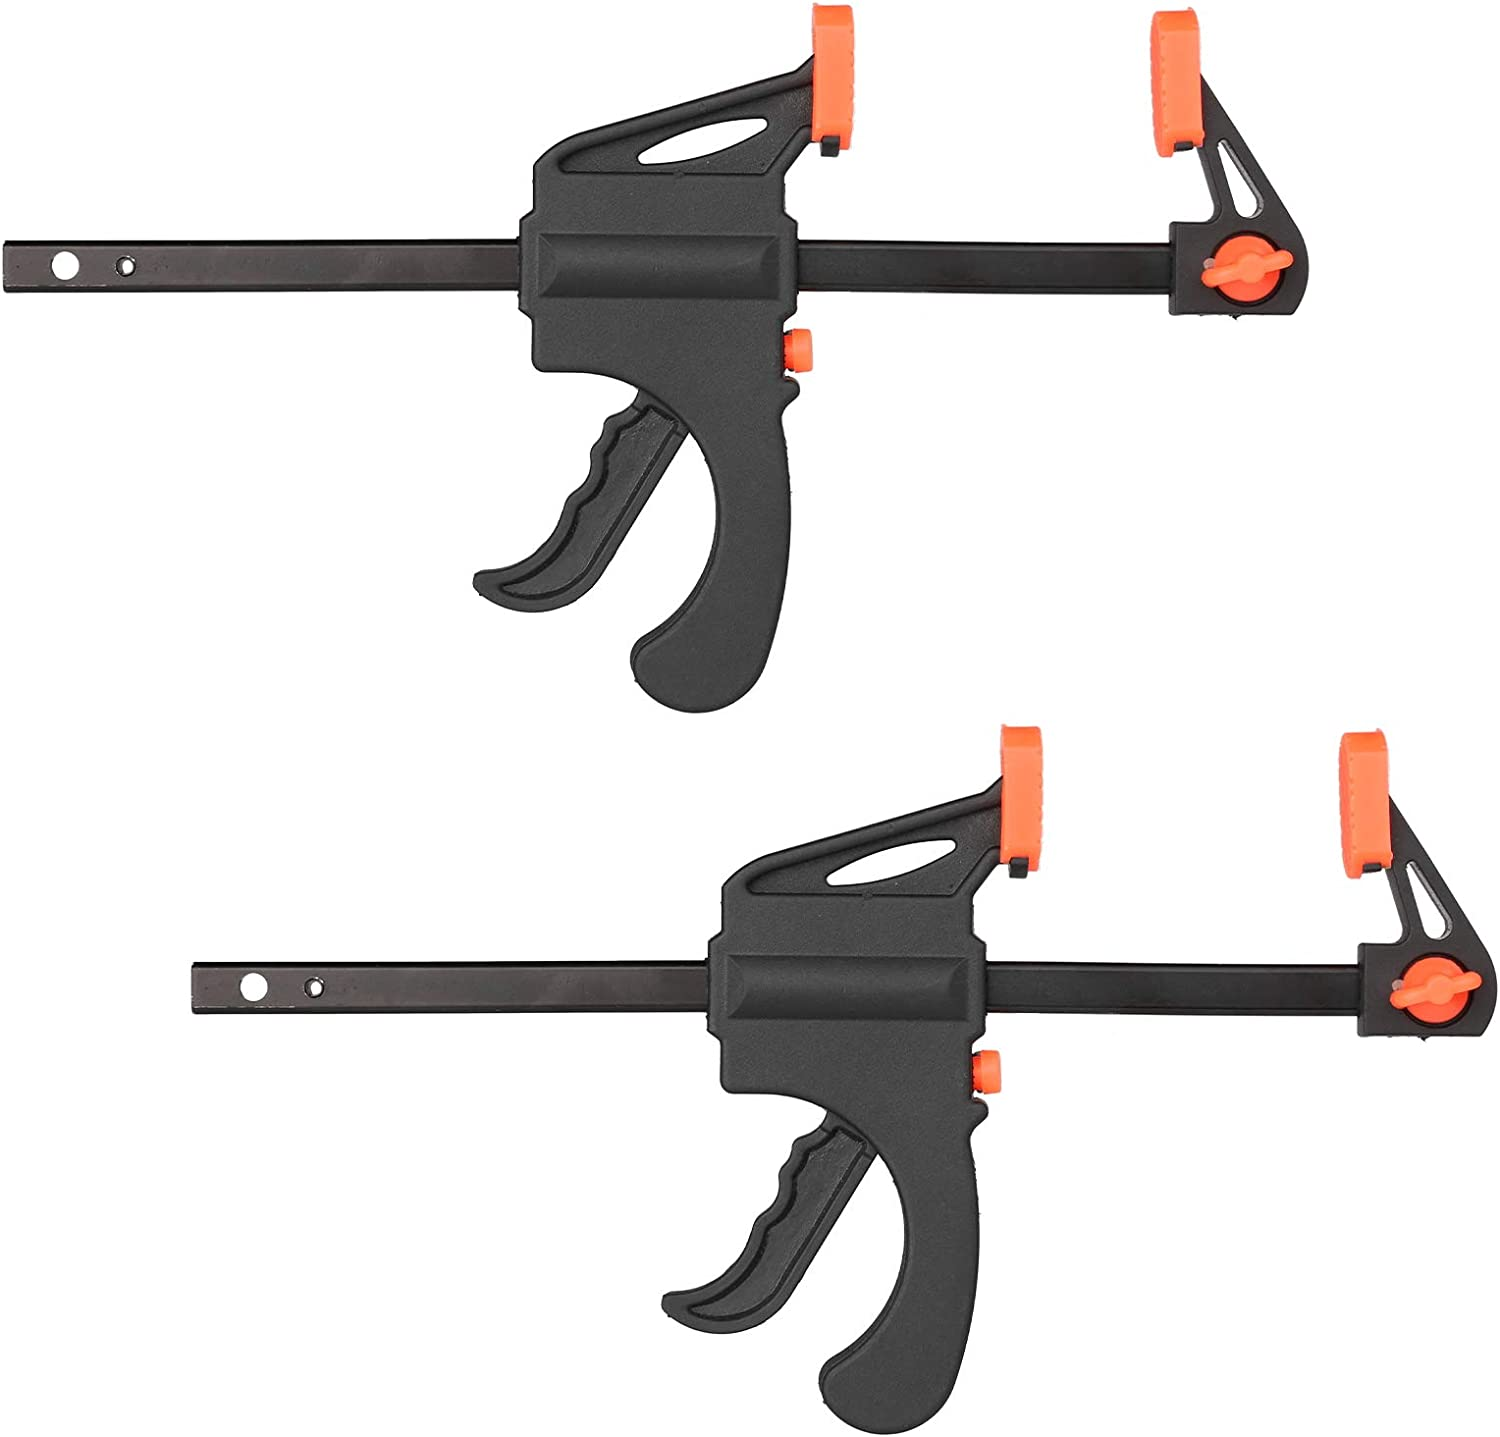 DIY Projects Quick Grip Clamps 4 Inch Ratchet Bar Clamps Woodworking Grip Clamps One Handed F Woodwork Clamp for Woodworking 6 Pack